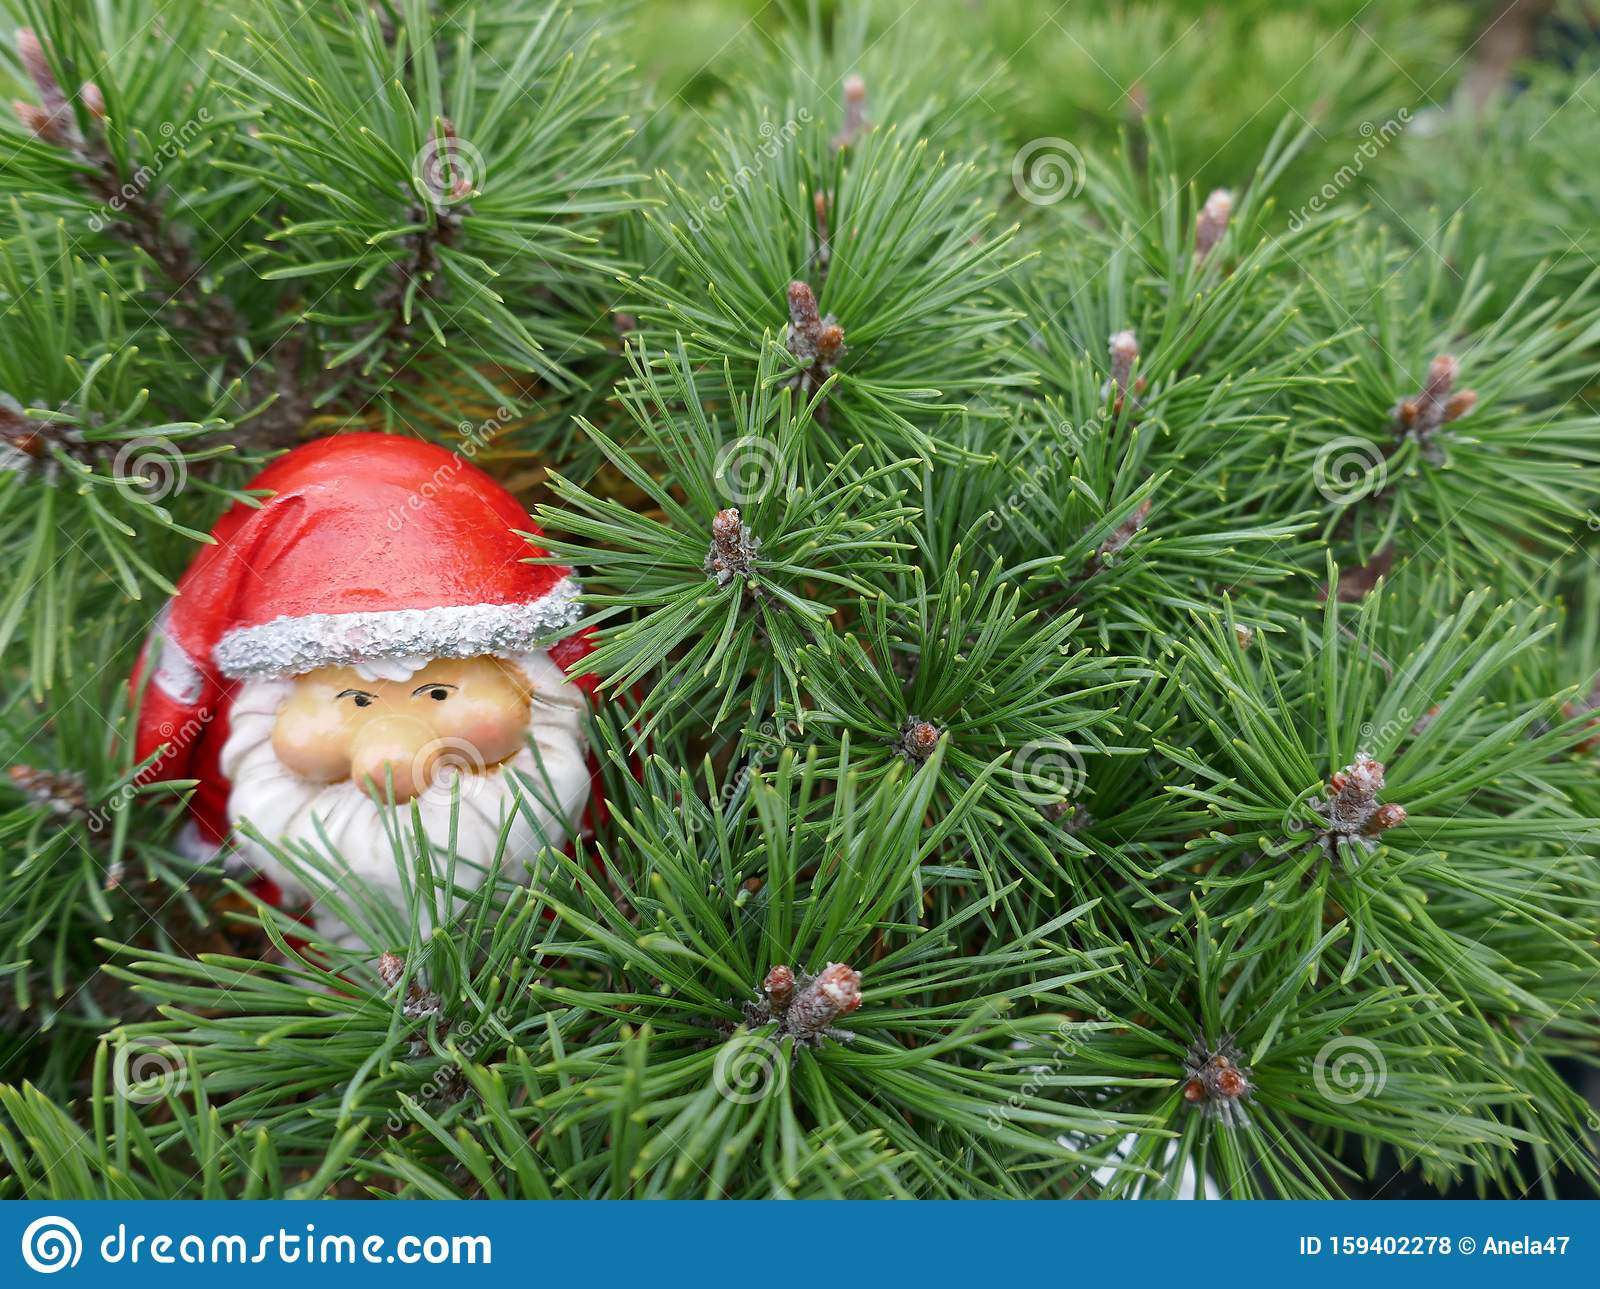 Santa Claus In The Forest A Cute Little Garden Gnome In Santa Claus Costume Hides In The Forest Between Pine Branches Stock Photo Image Of Copy Background 159402278